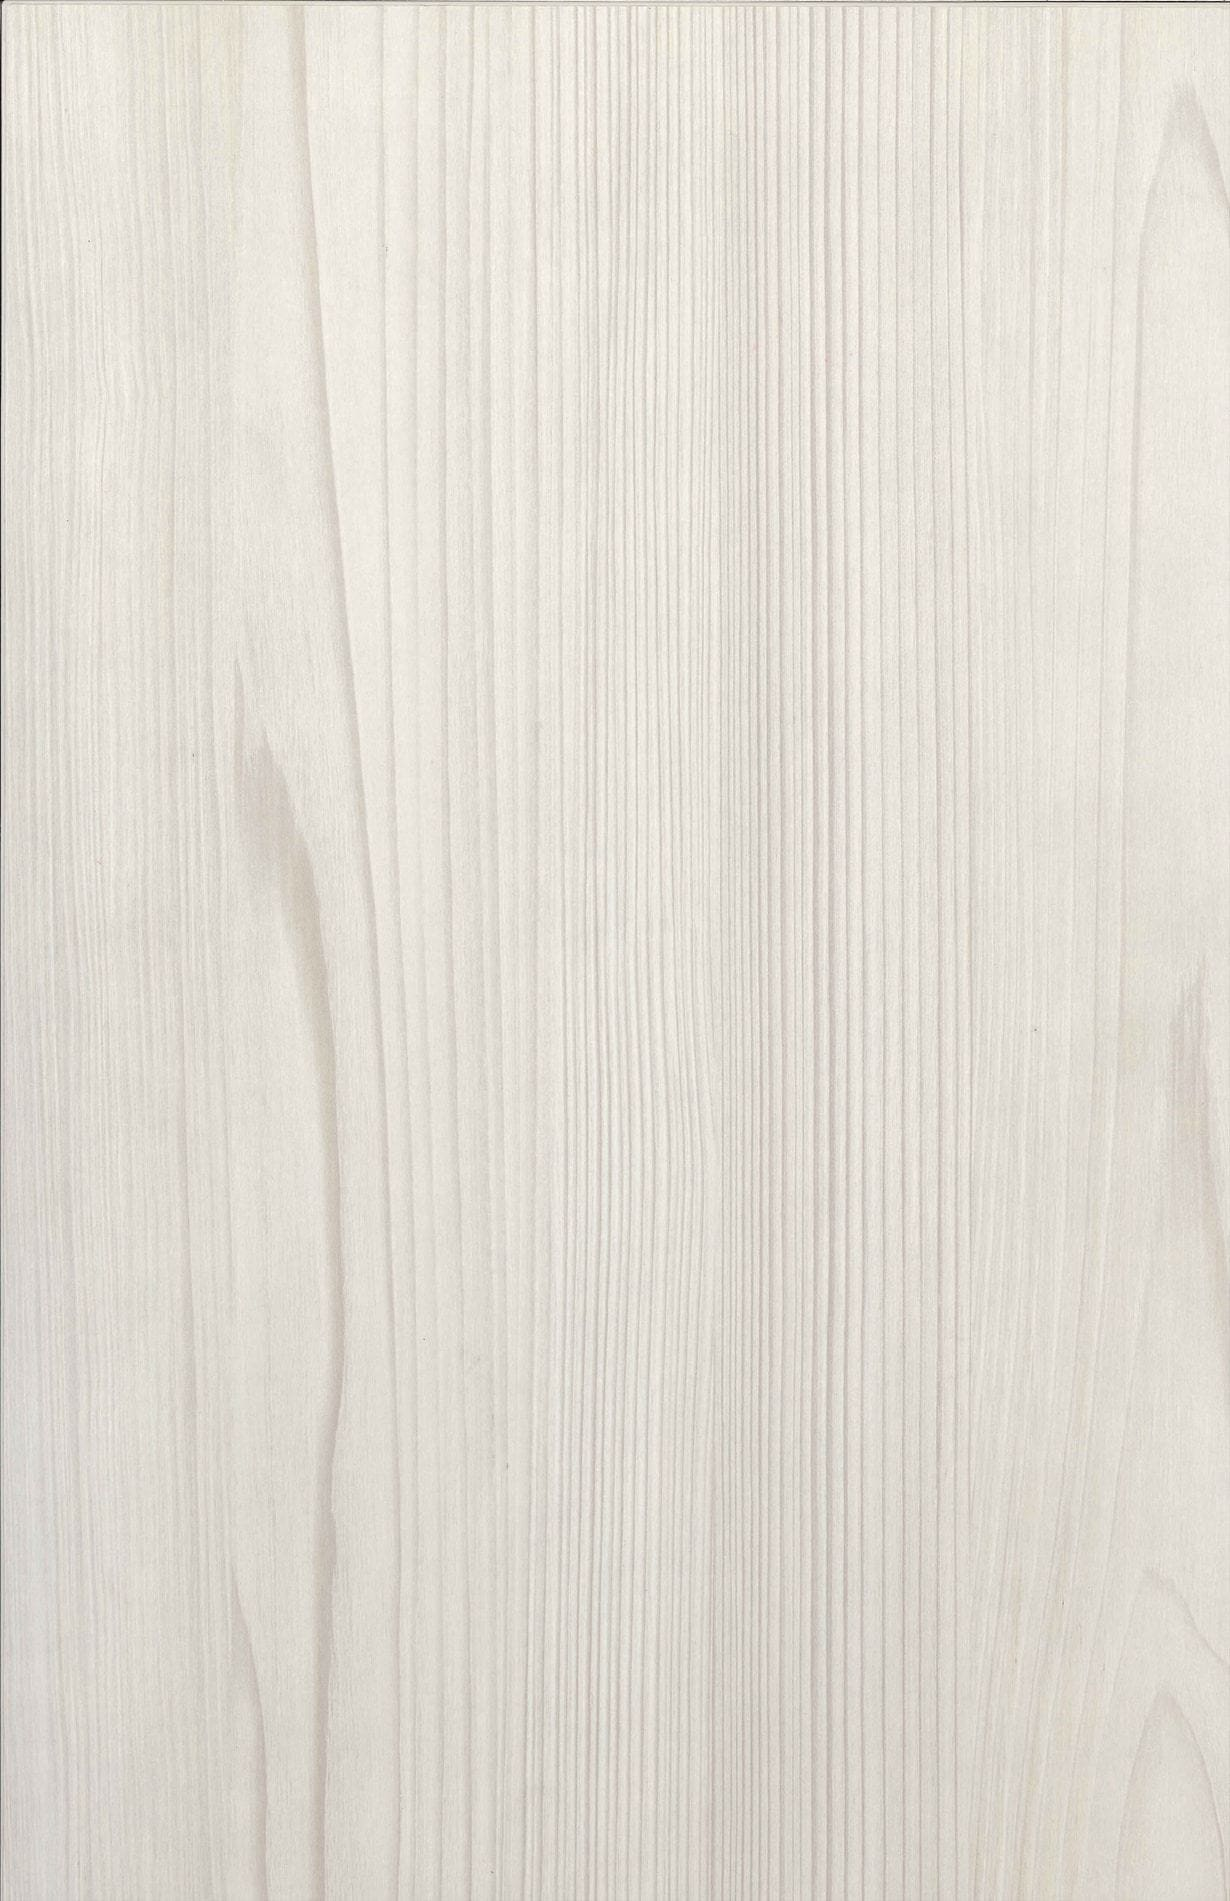 trondheim ash white cabinetry finish for parklane kitchens in urban elegance design package